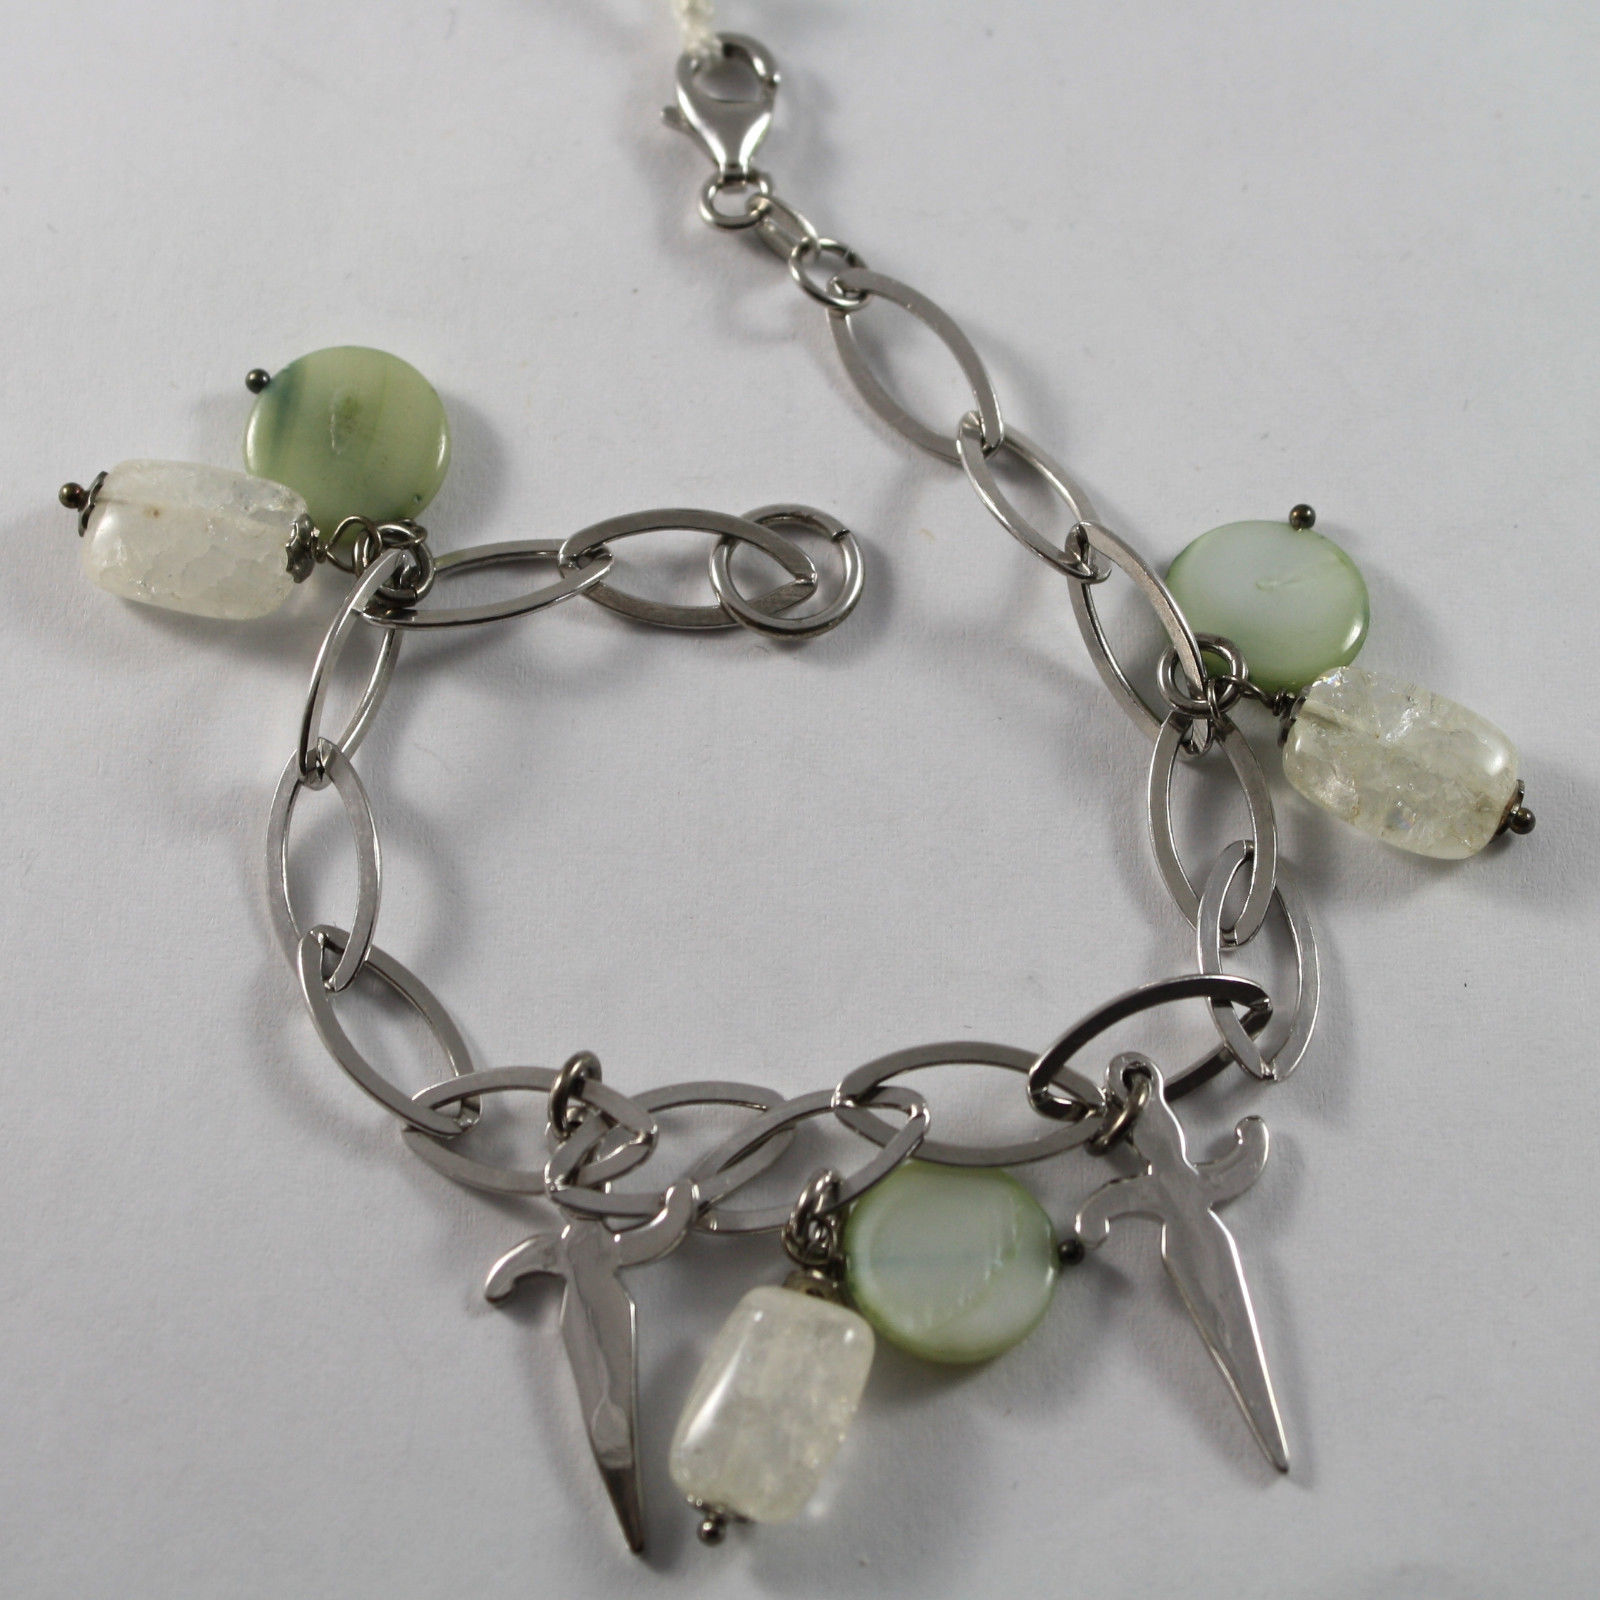 .925 RHODIUM SILVER  BRACELET WITH CRISTAL, GREEN MOTHER OF PEARL AND CHARMS